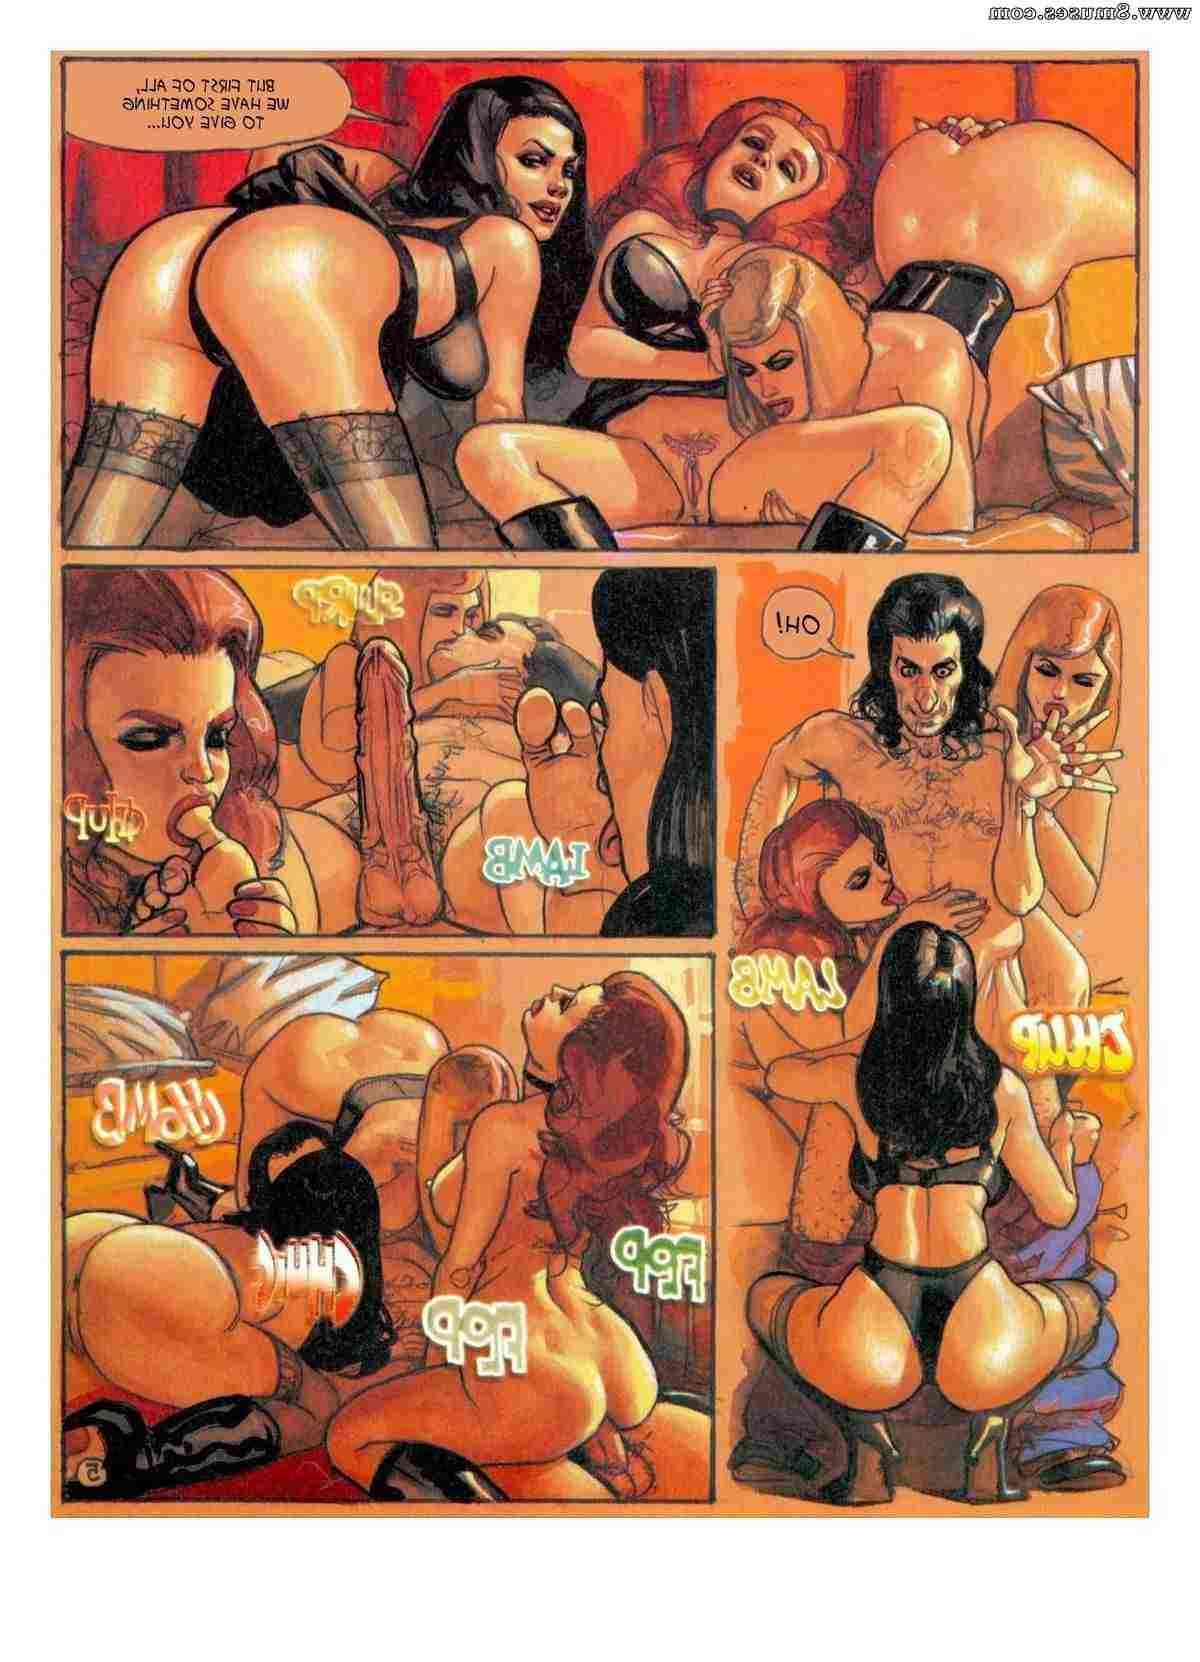 Ignacio-Noe-Comics/All-the-Right-Career-Moves All_the_Right_Career_Moves__8muses_-_Sex_and_Porn_Comics_13.jpg